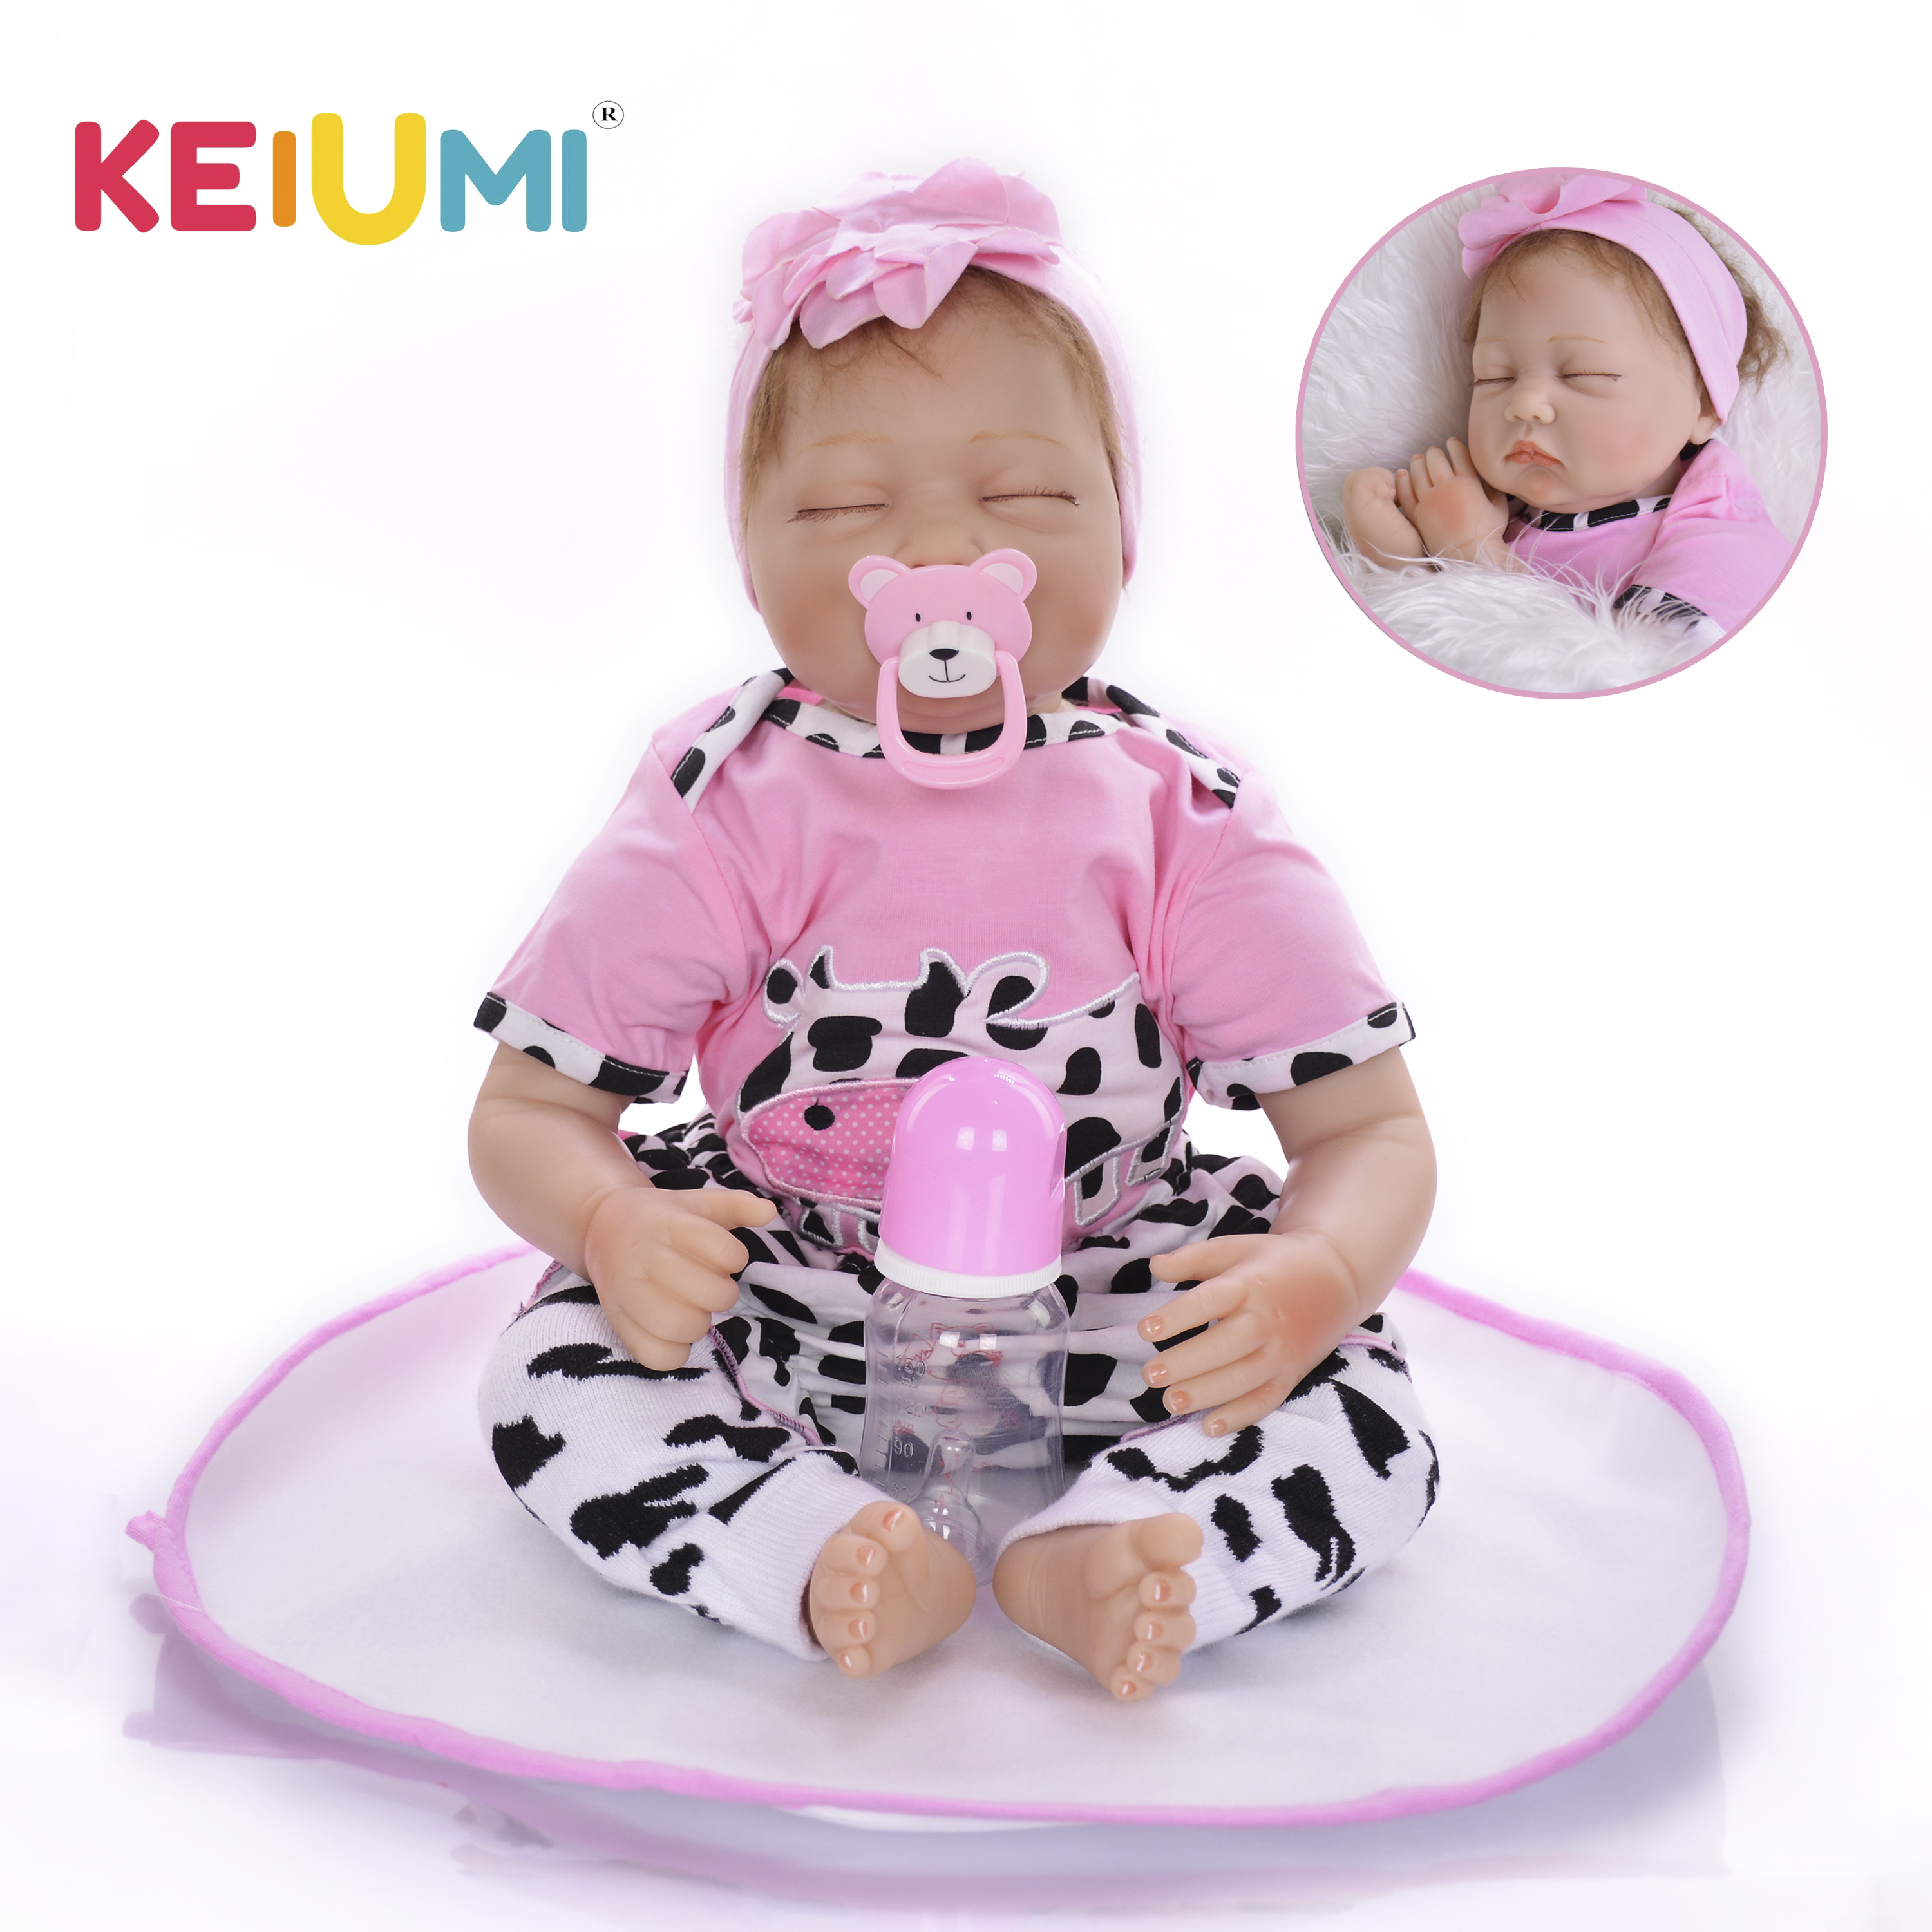 22 Inch Soft Silicone Baby Doll With Closed Eyes Realistic Newborn Reborn Girl Babies Doll Kids